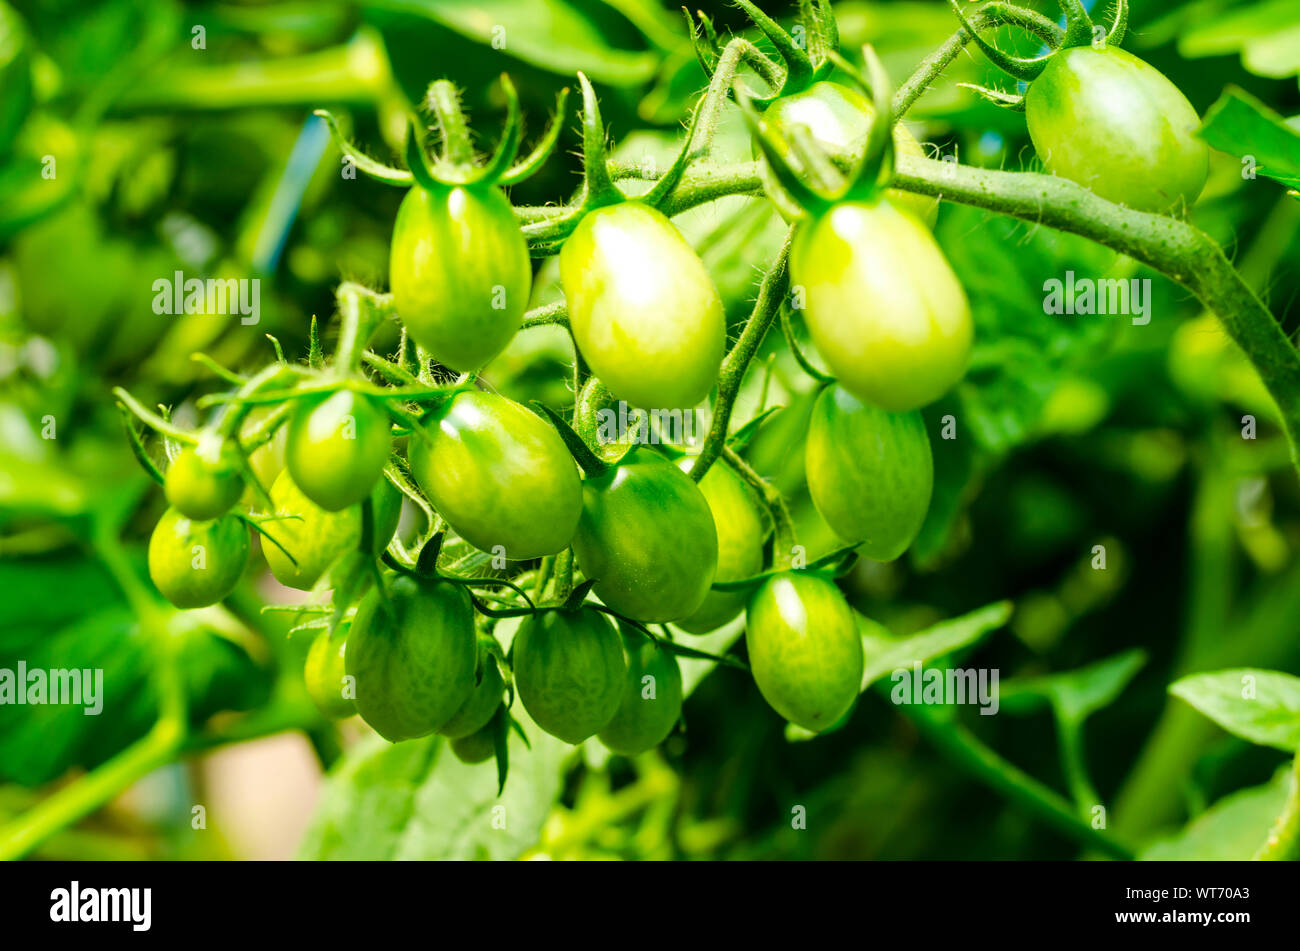 Tomato bushes with green fruits in greenhouse. Studio Photo Stock Photo